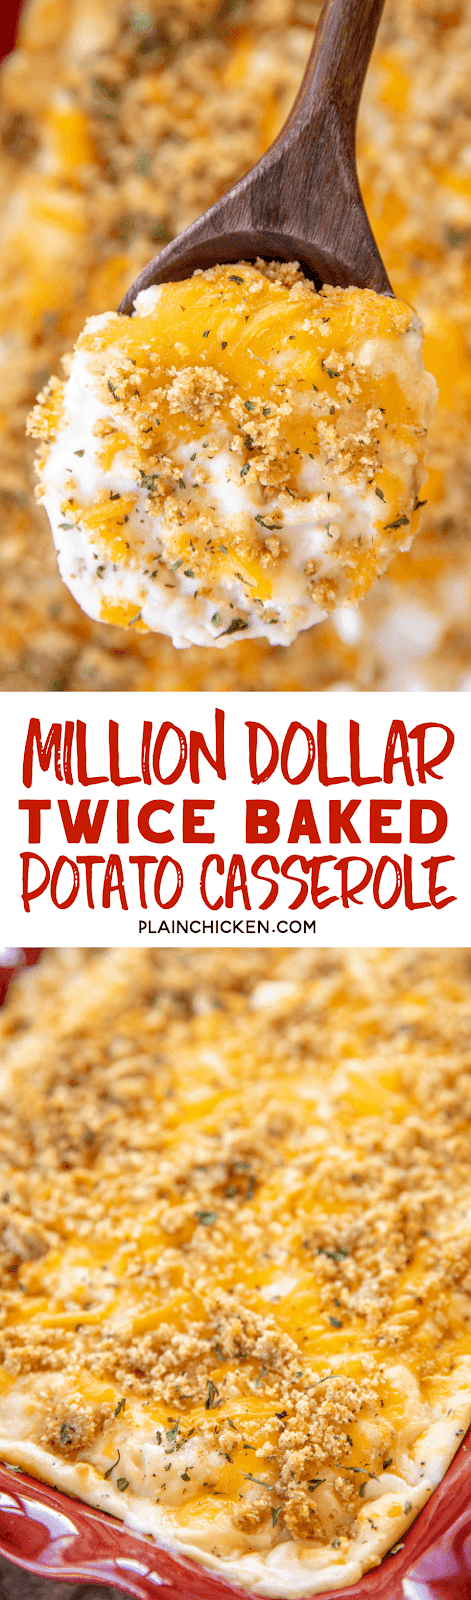 Million Dollar Twice Baked Potato Casserole - the BEST potato casserole EVER!!! Loaded with tons of yummy cheese! Mashed potatoes, cream cheese, cottage cheese, sour cream, cheddar cheese, onion, garlic, butter, and Italian bread crumbs. SO easy!!! Can make in advance and refrigerate or freeze for later. The most requested potato recipe in our house! YUM! #potatocasserole #recipe #easyrecipe #sidedish #freezermeal